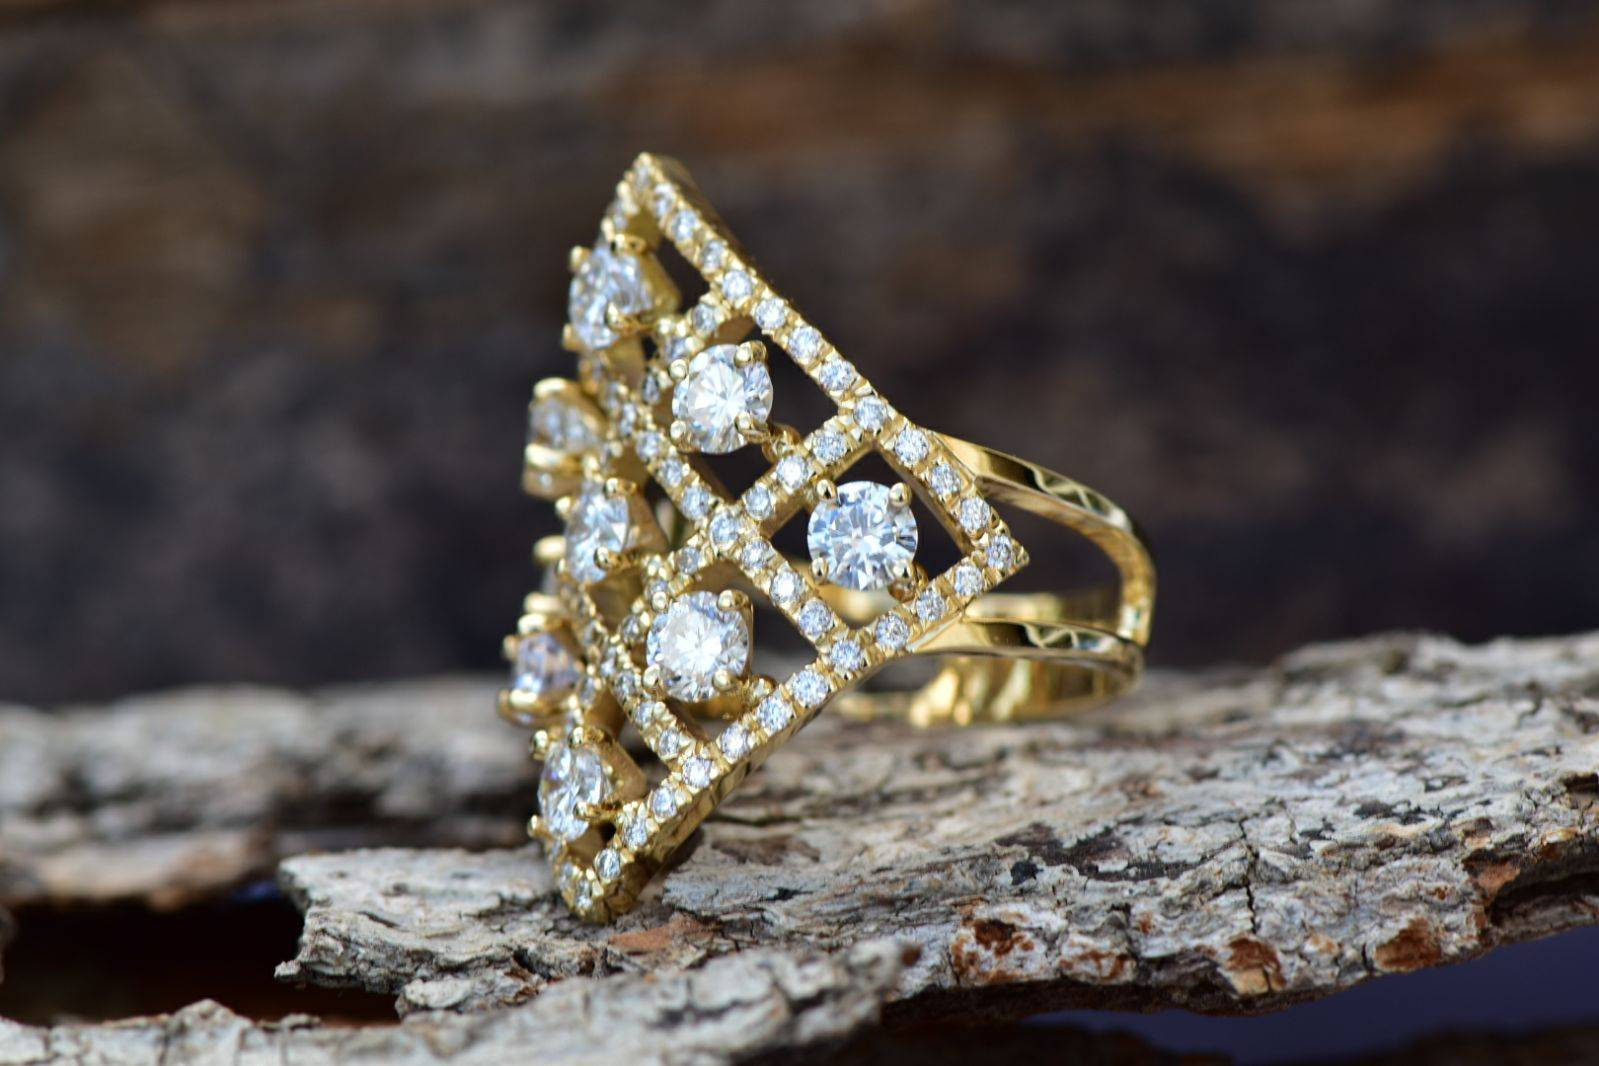 Statement ring-Art deco diamond ring-2.80 ct Designer Diamond ring-Anniversary gifts for wife-Gold Statement Ring